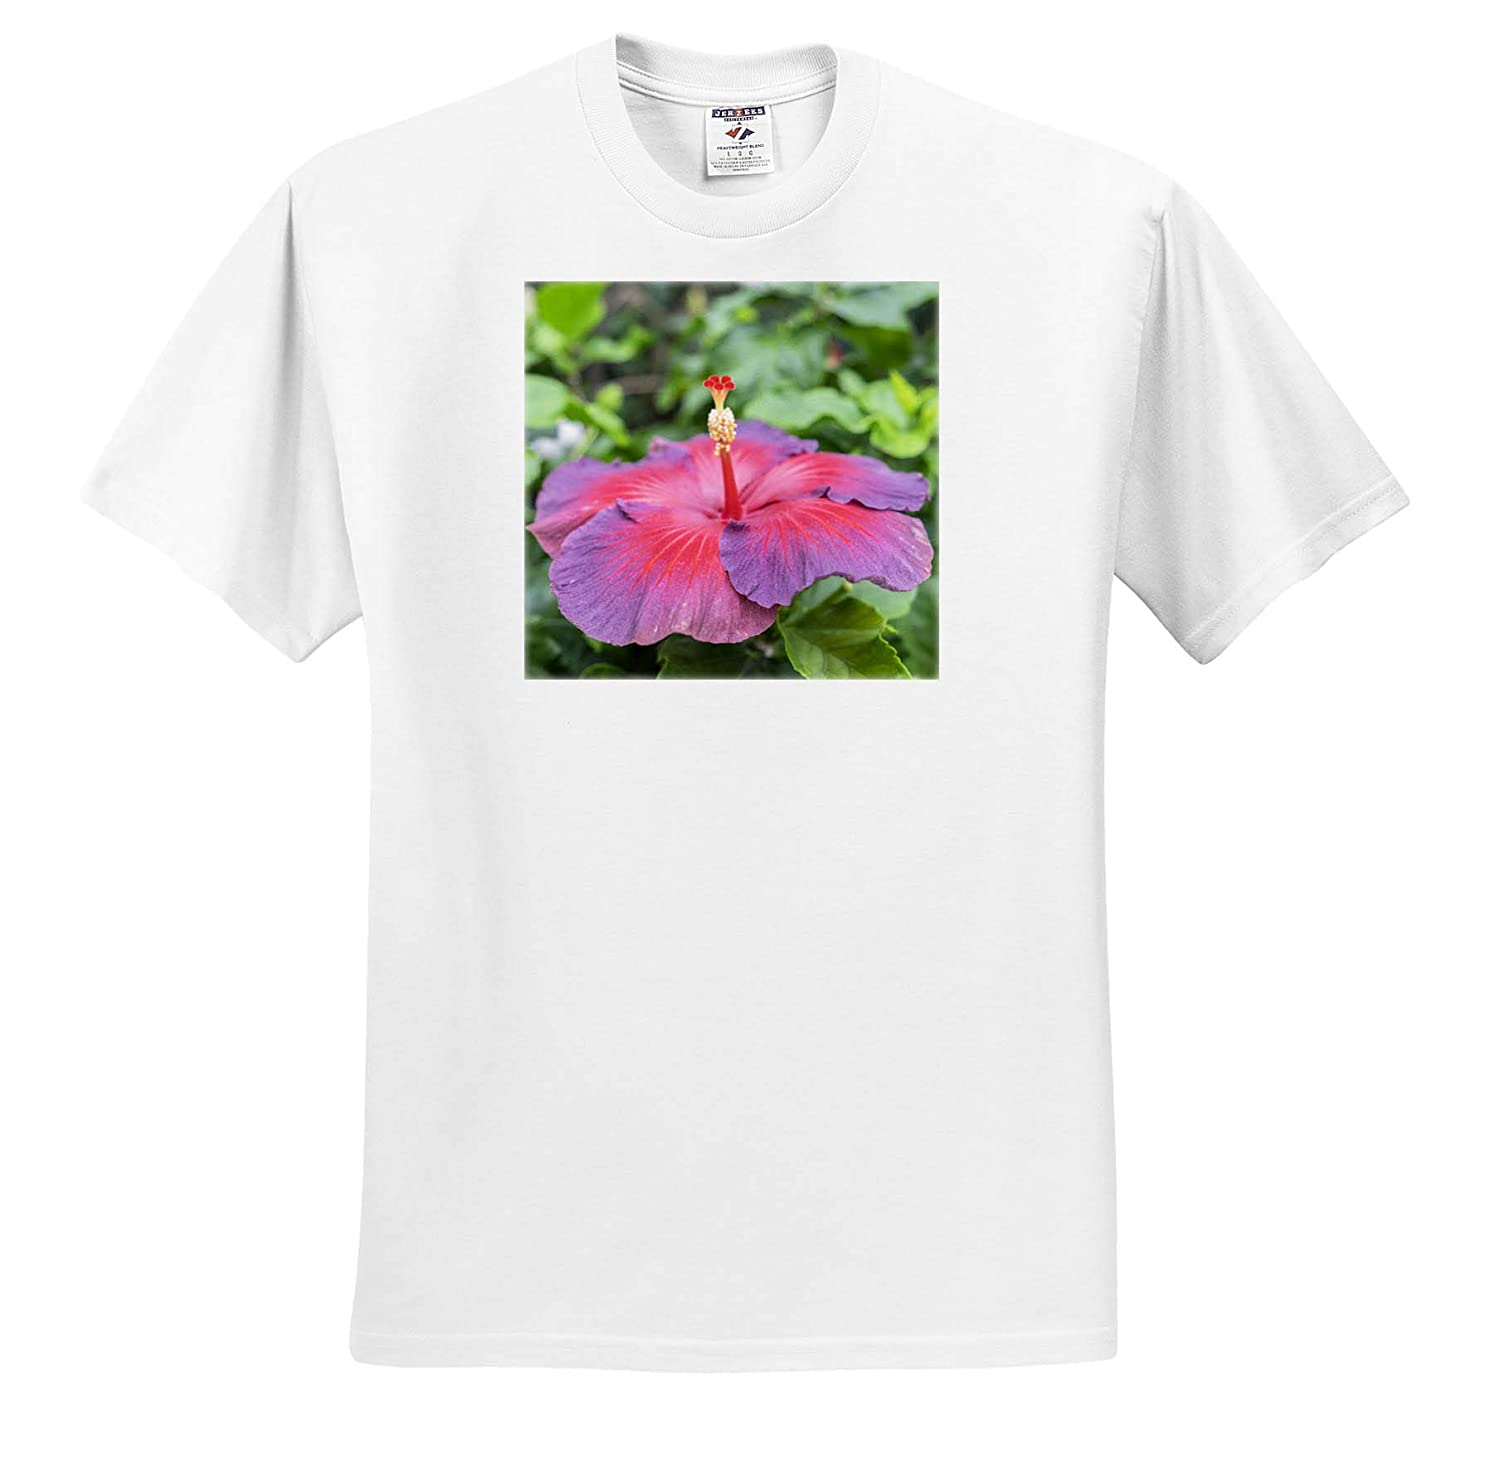 3dRose Danita Delimont Night Fire ts/_313912 Adult T-Shirt XL Hibiscus Flowers